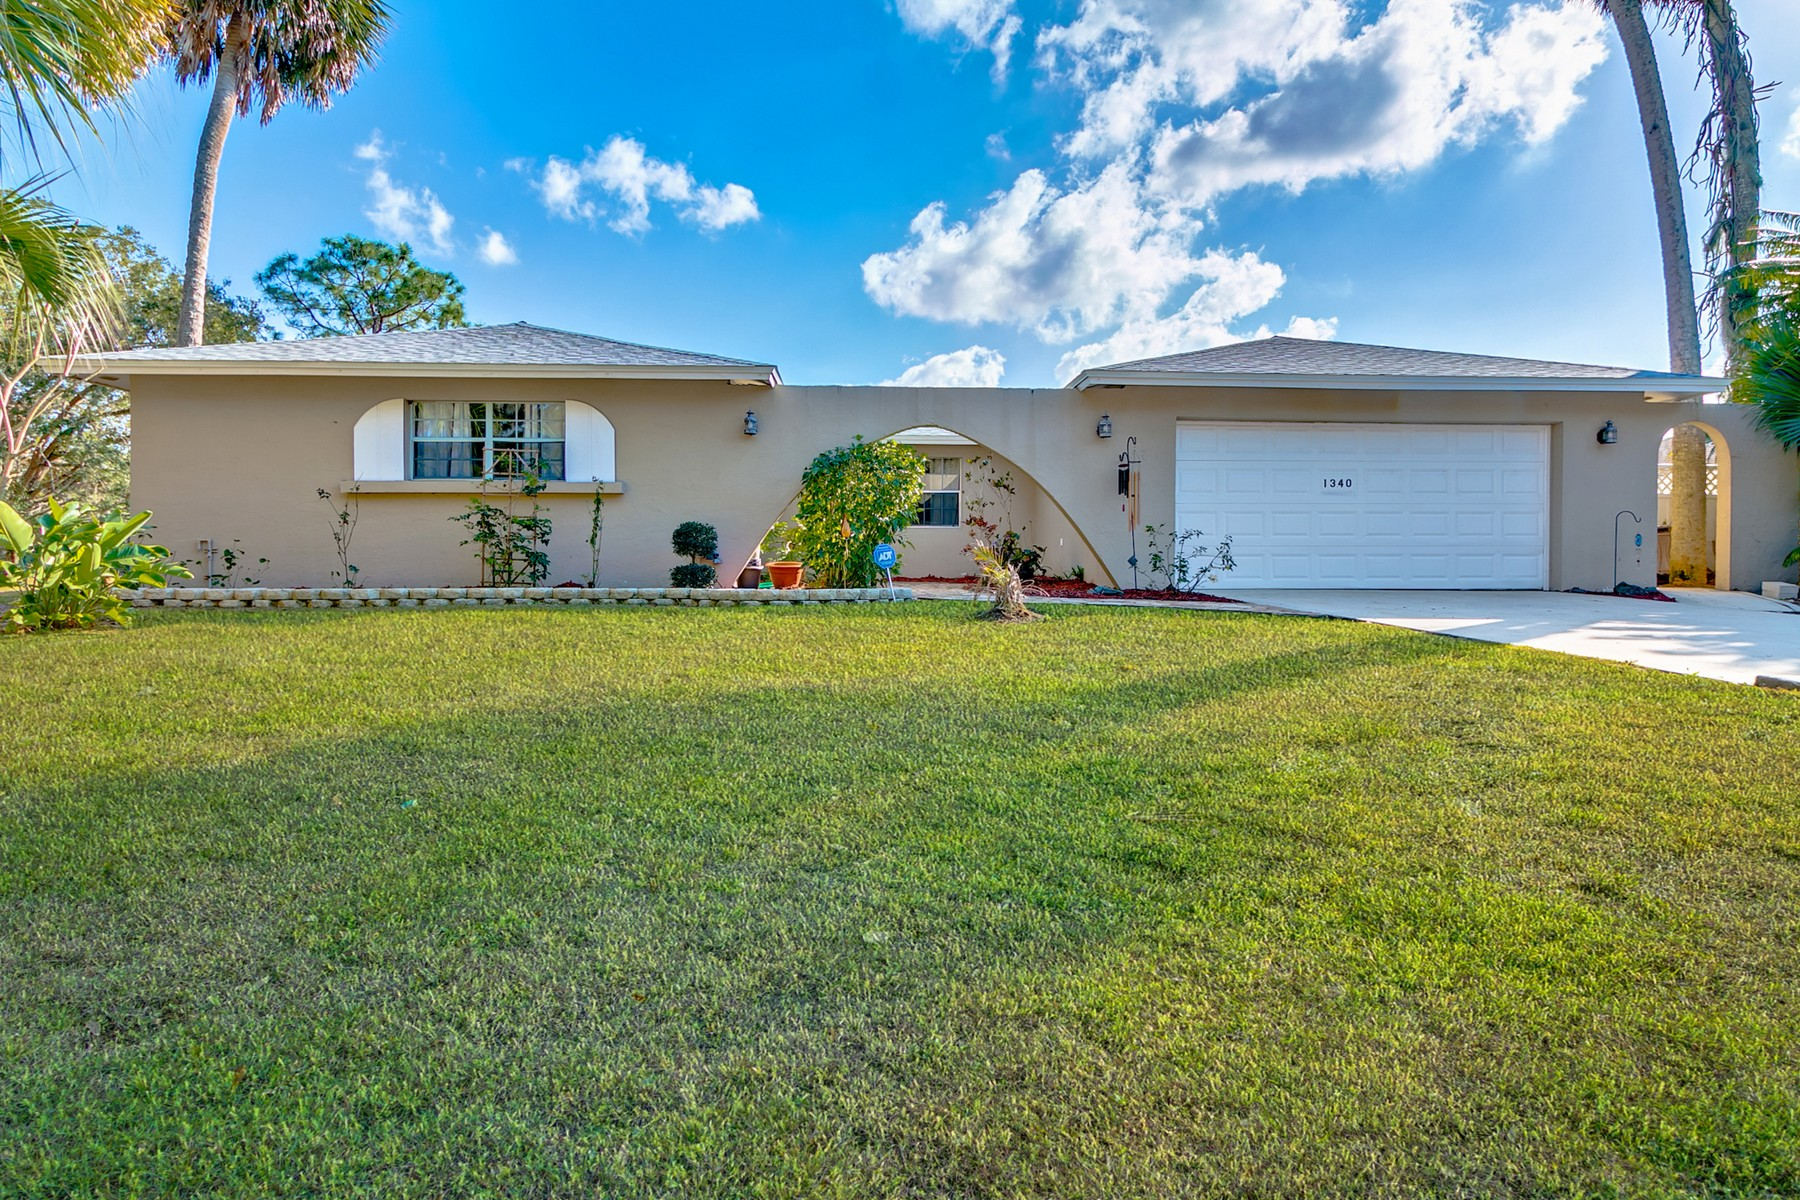 Vivienda unifamiliar por un Venta en 1340 Meadowbrook Road Palm Bay, Florida, 32905 Estados Unidos